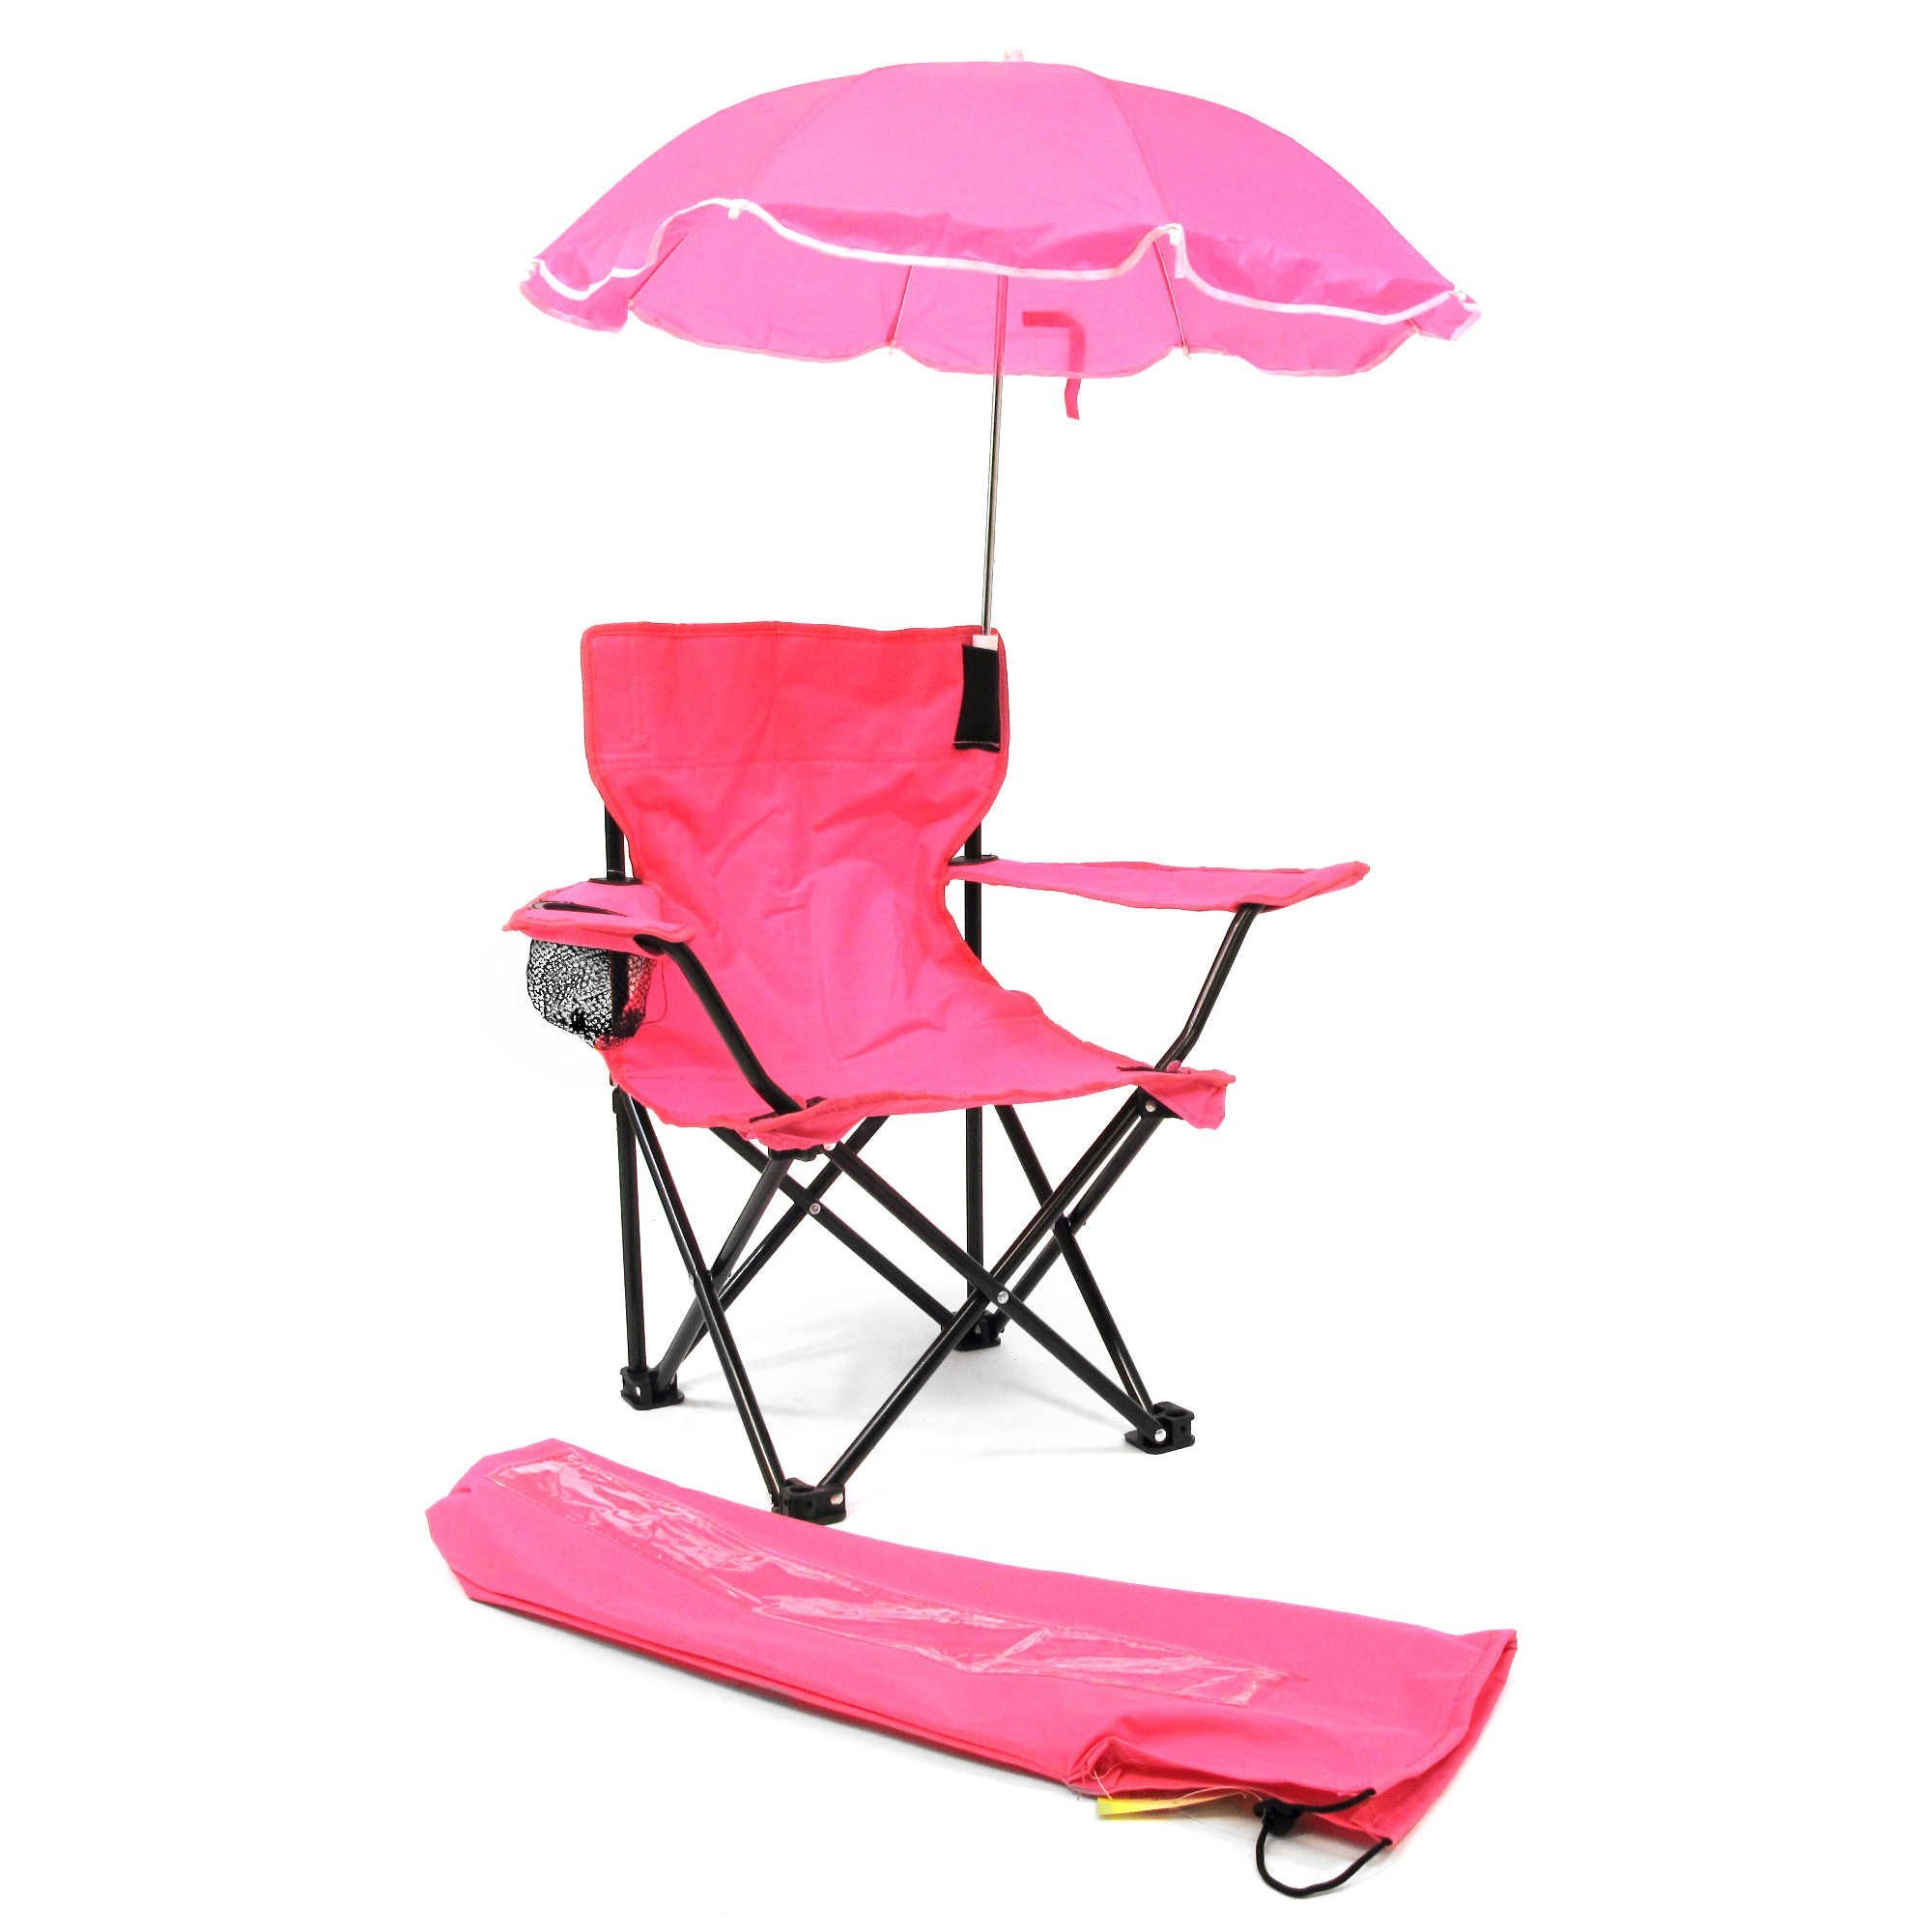 Cute & Lovely Girls Camp Chair with Umbrella in Pink (Suitable for children 2-4 years)